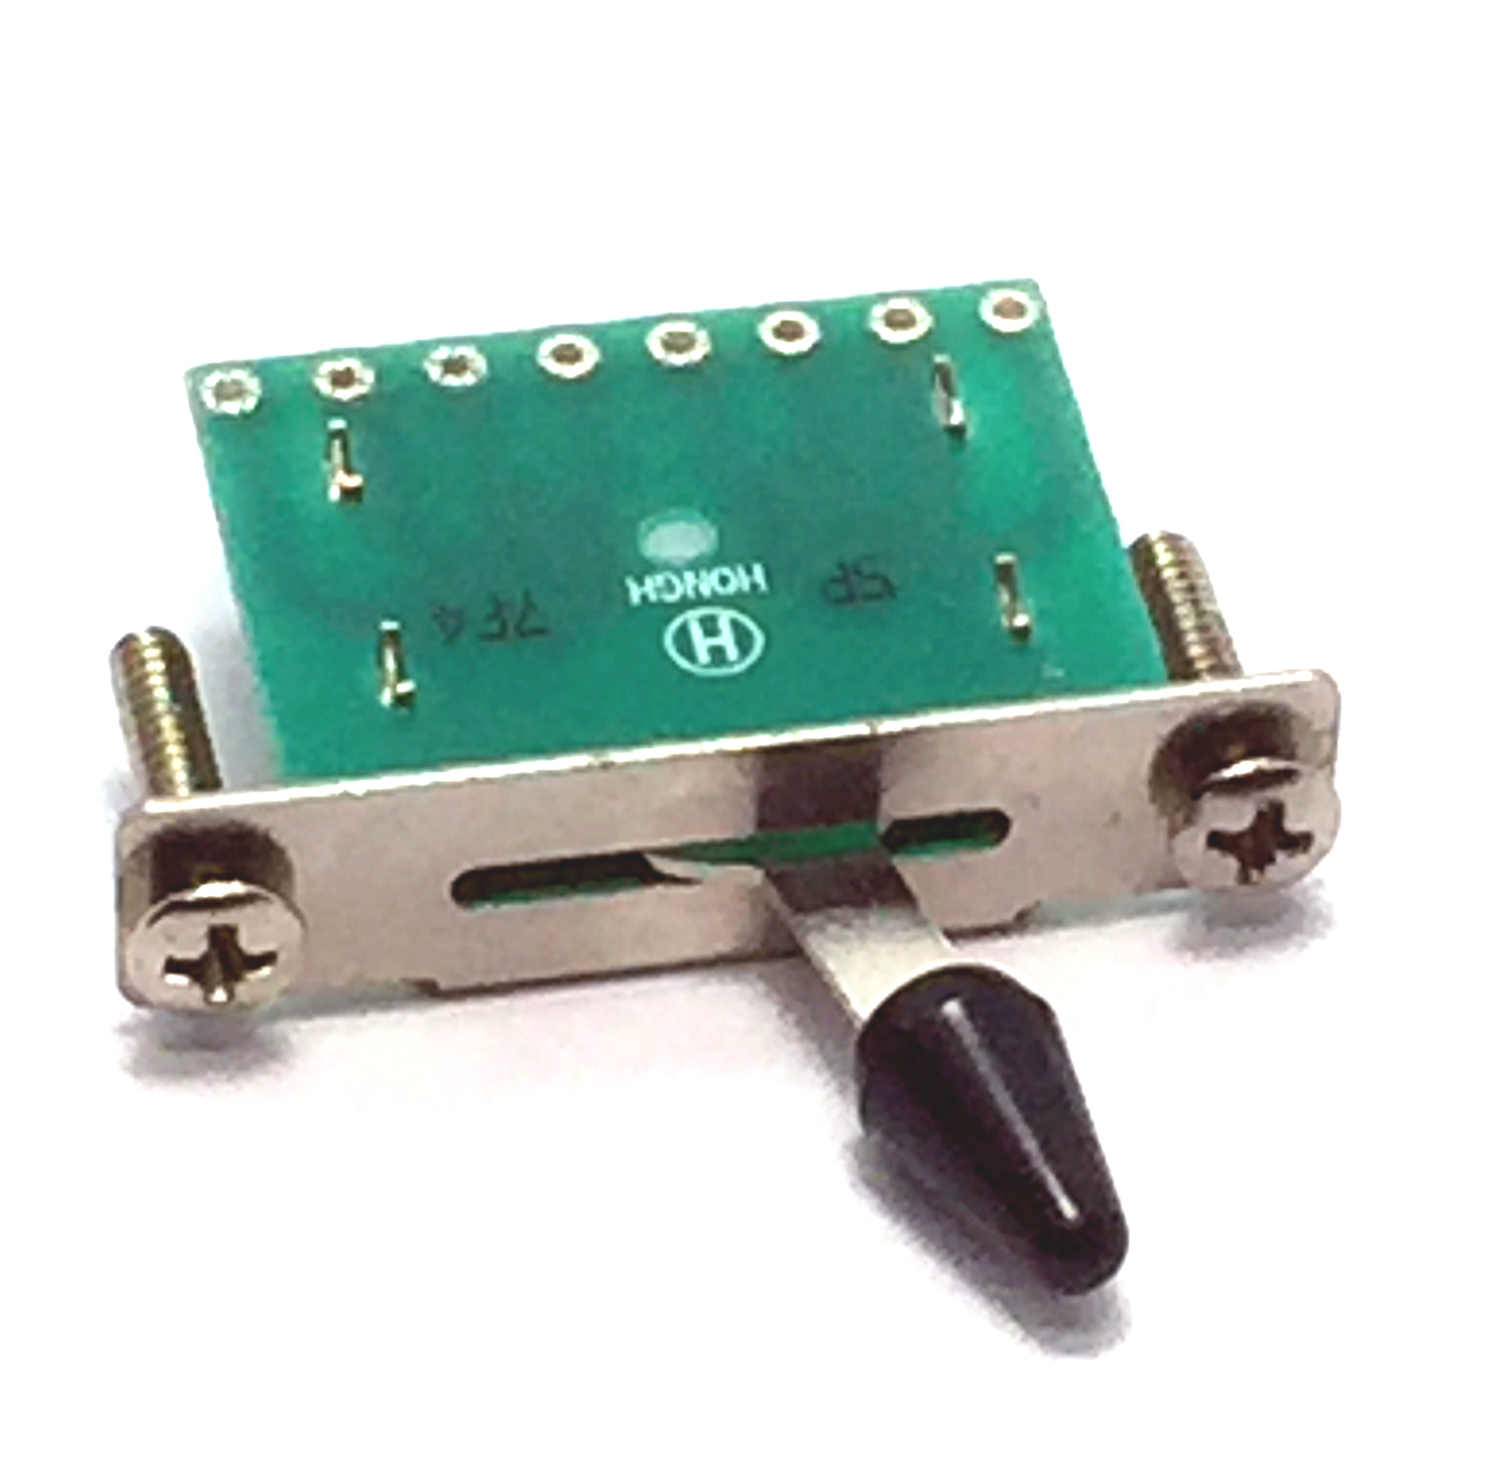 PCB Standard Switch, 3 Way or 5 Way Position Lever / Blade